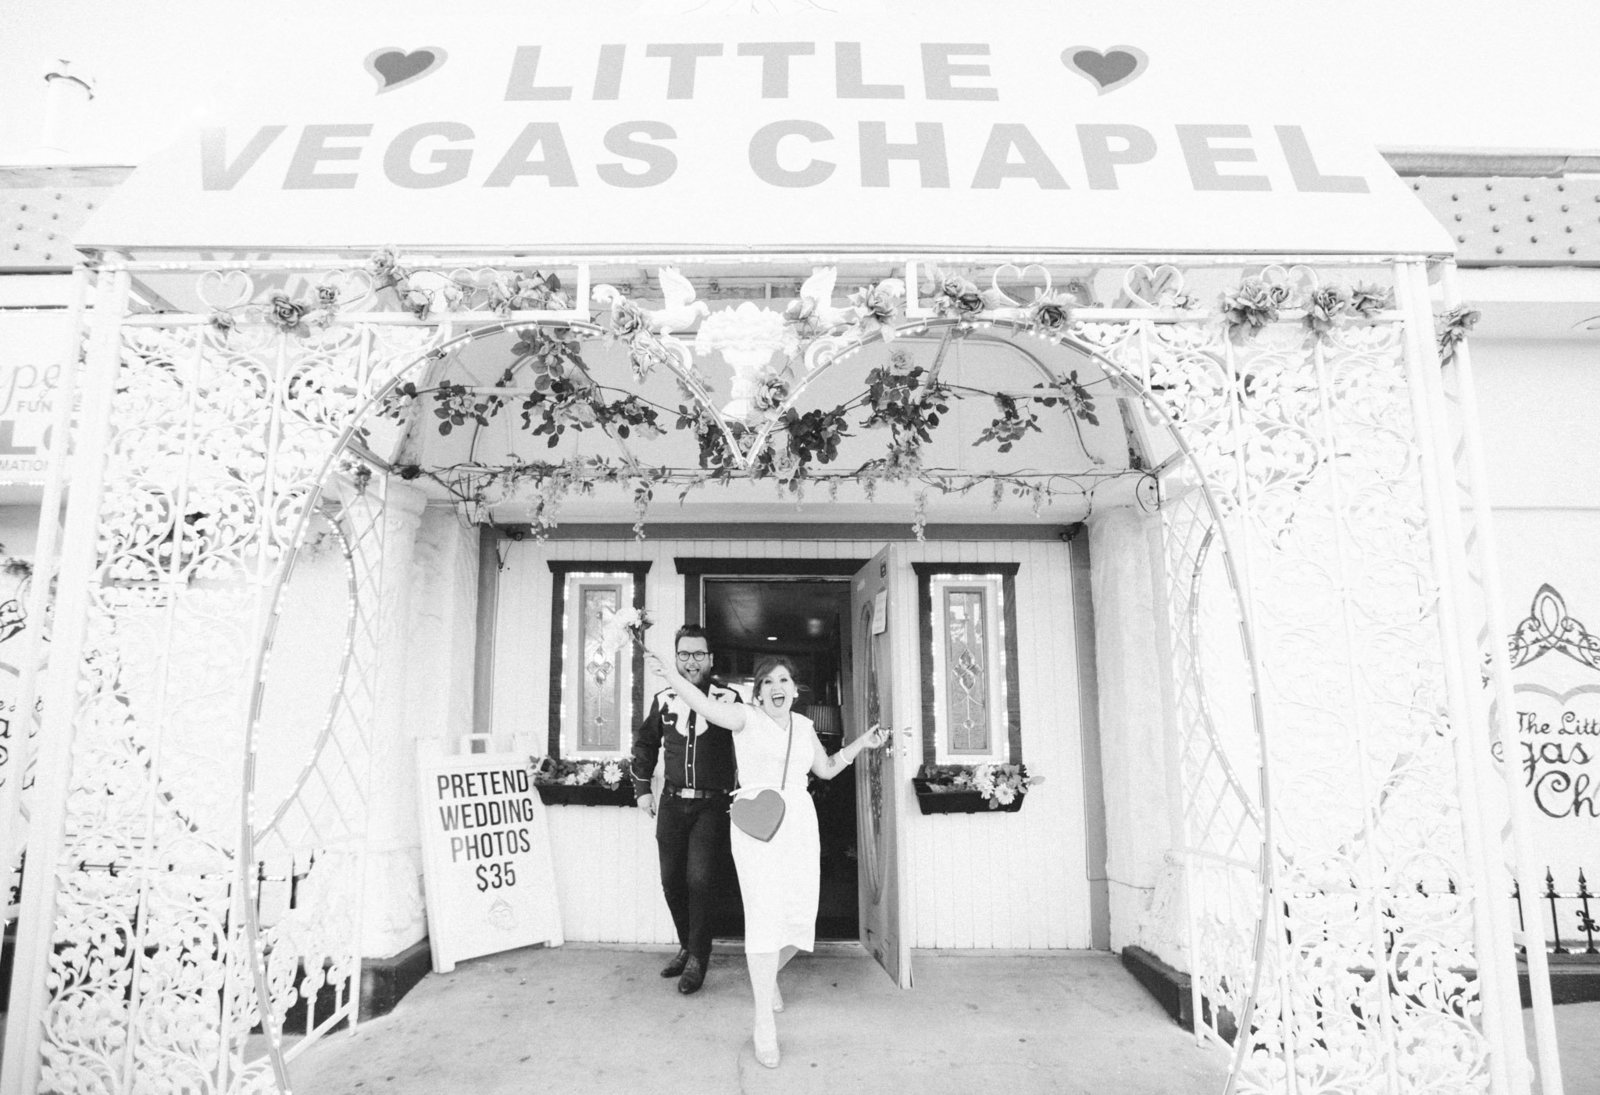 Little-Vegas-Chapel-Elopement-55